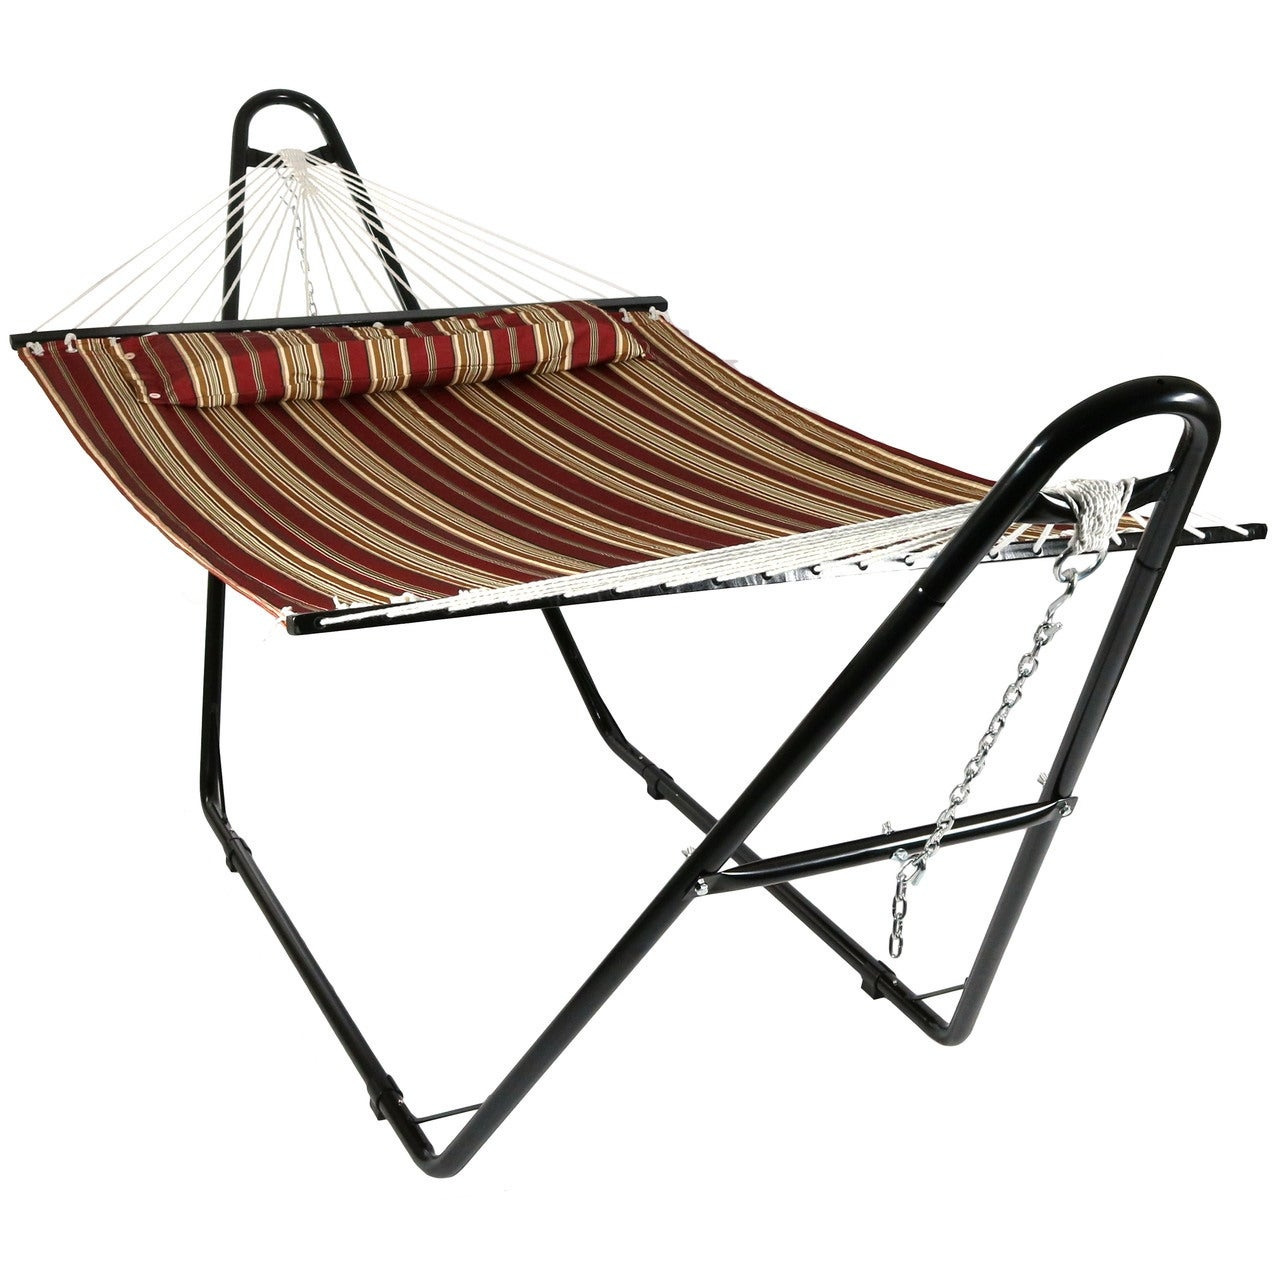 Sunnydaze Quilted Double Fabric 2-Person Hammock with Multi-Use Universal Stand - Thumbnail 18